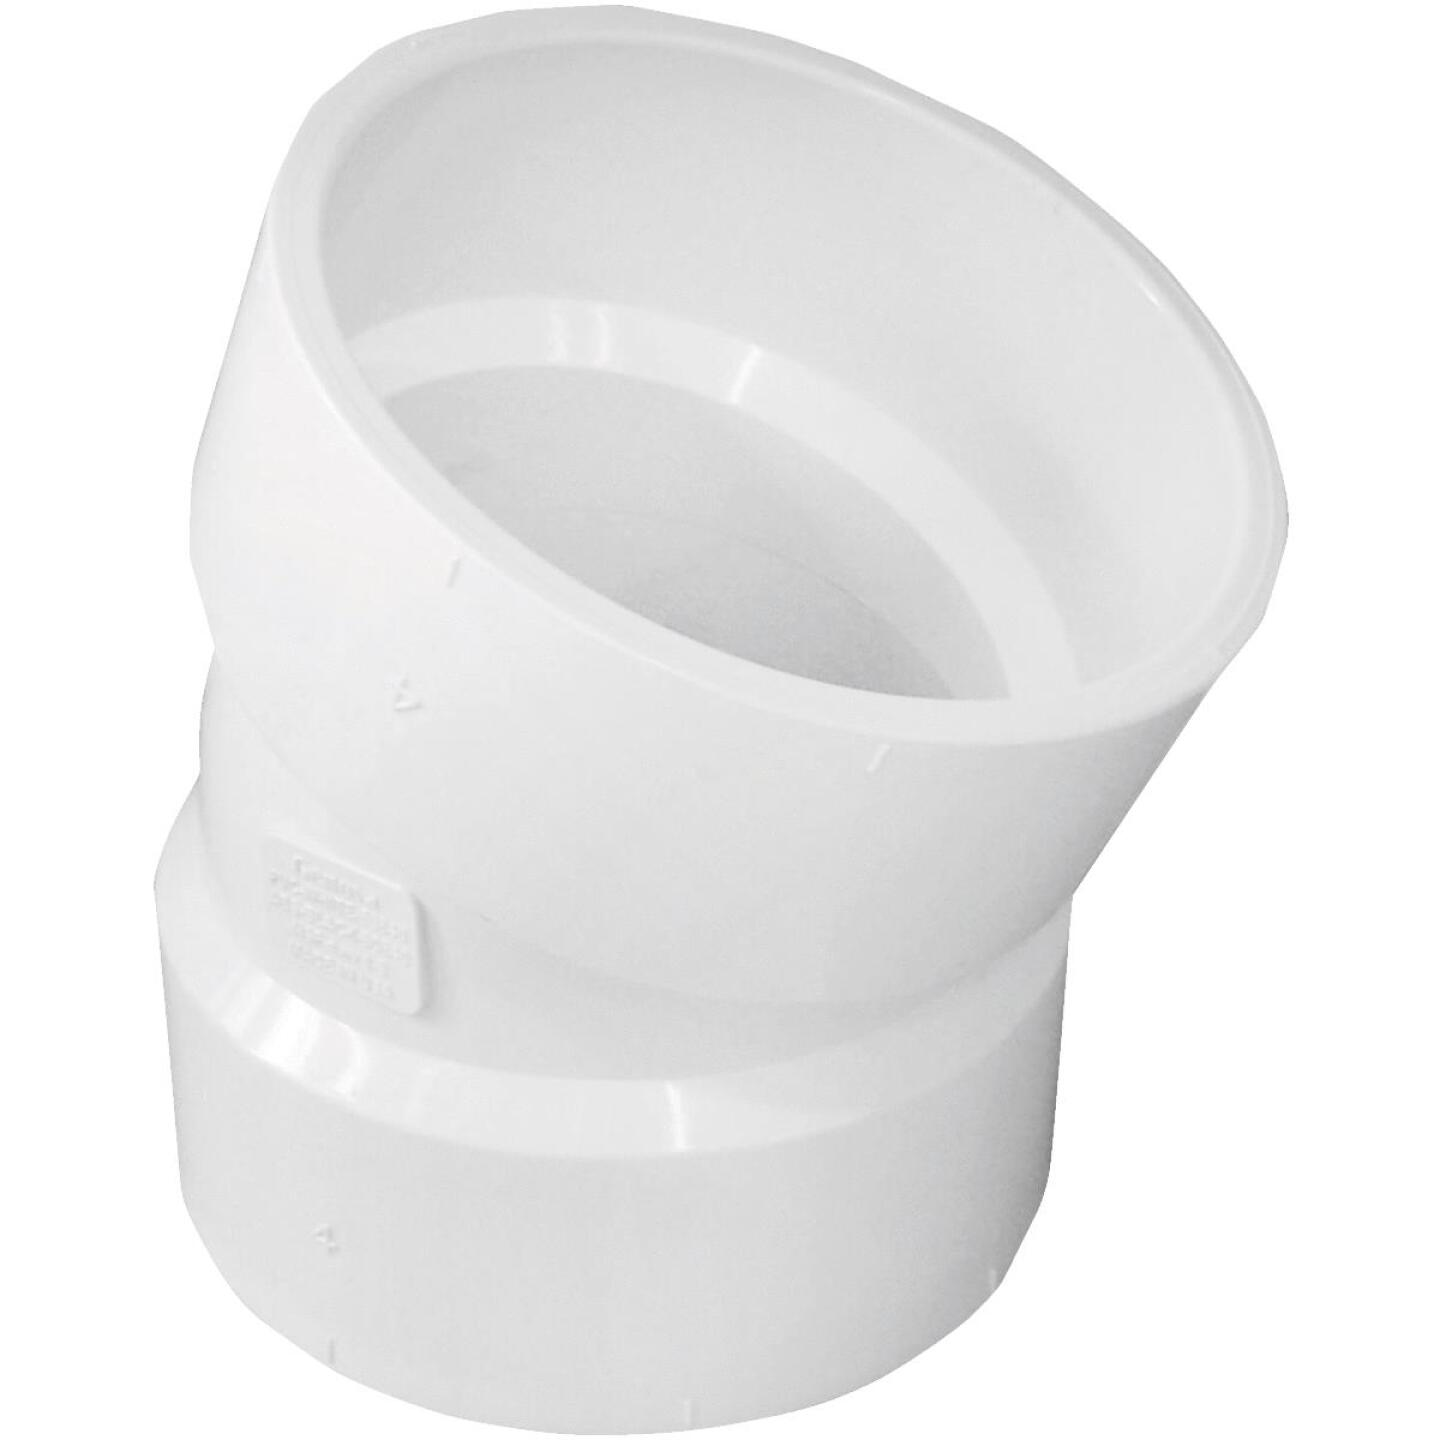 Charlotte Pipe 4 In. 22-1/2D DWV PVC Elbow Image 1